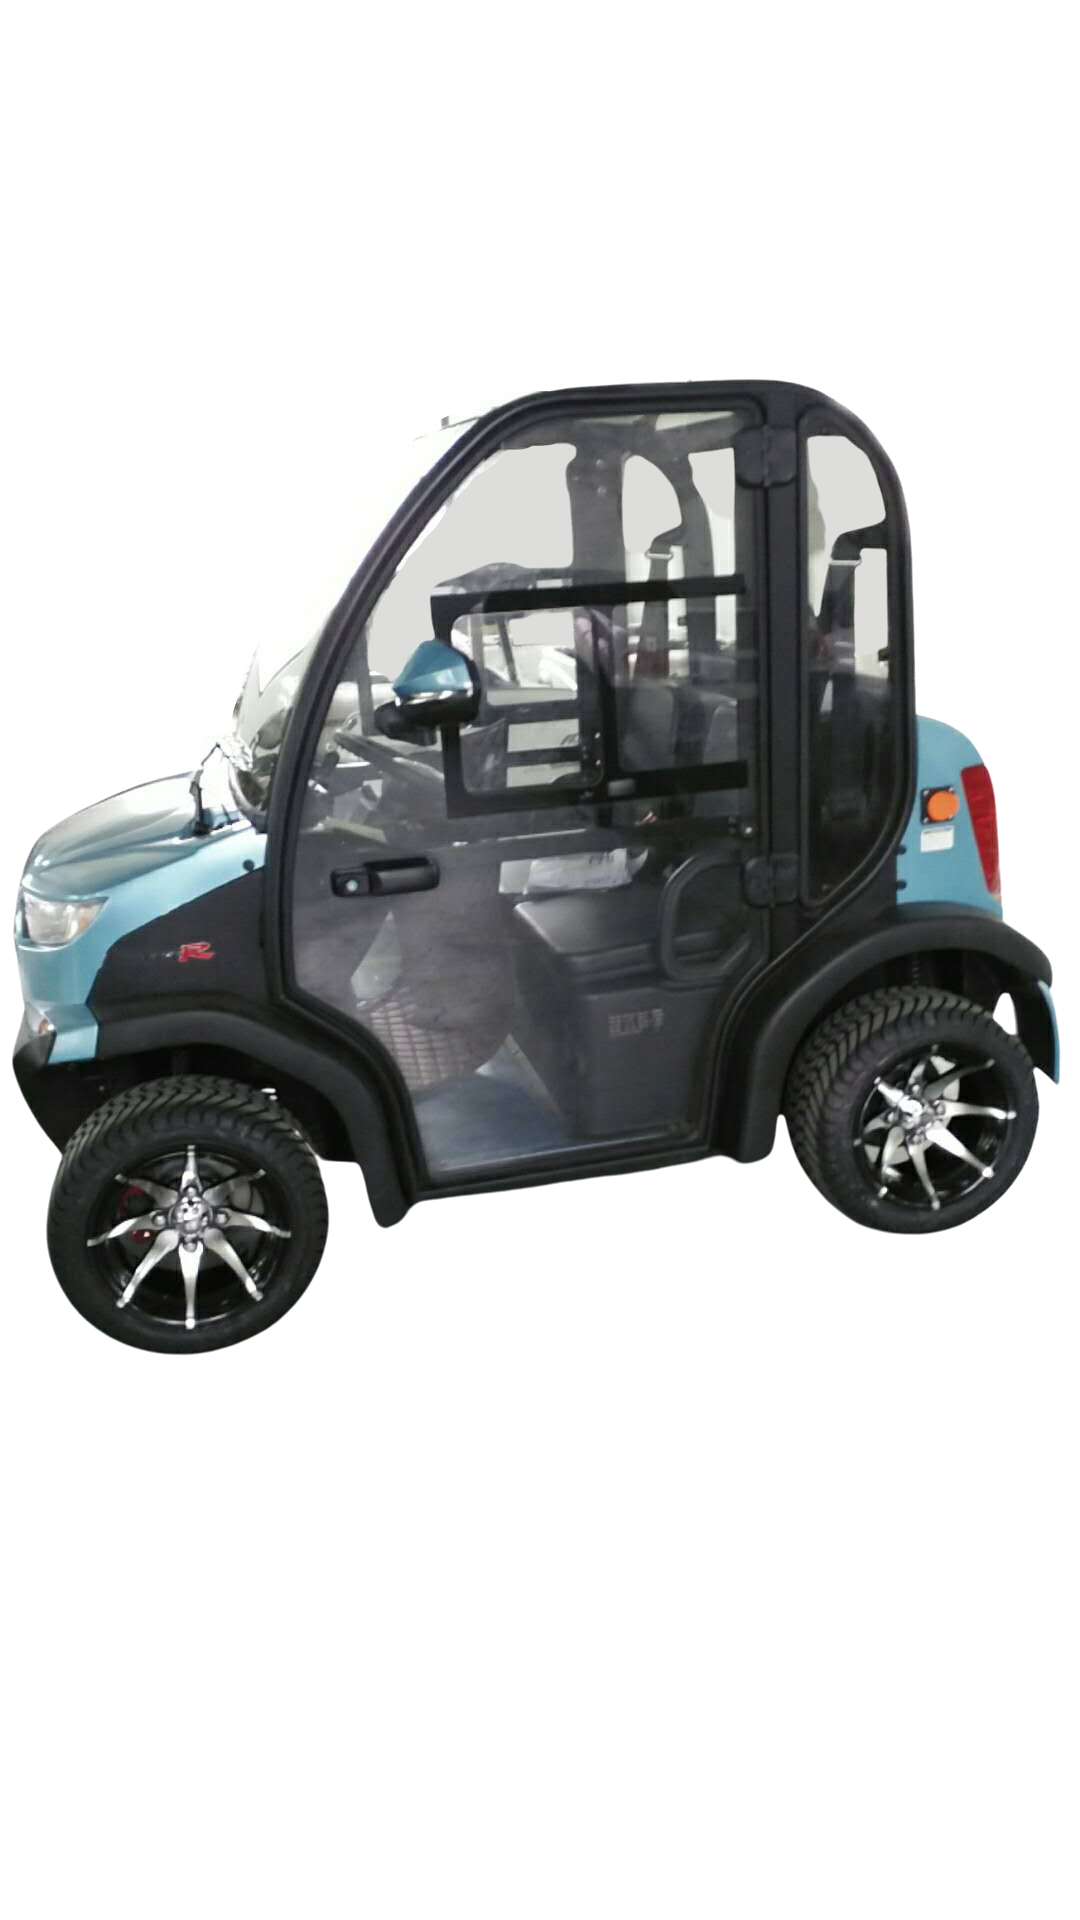 ECAR LT-S2.DB 2 Seat Community Golf Cart